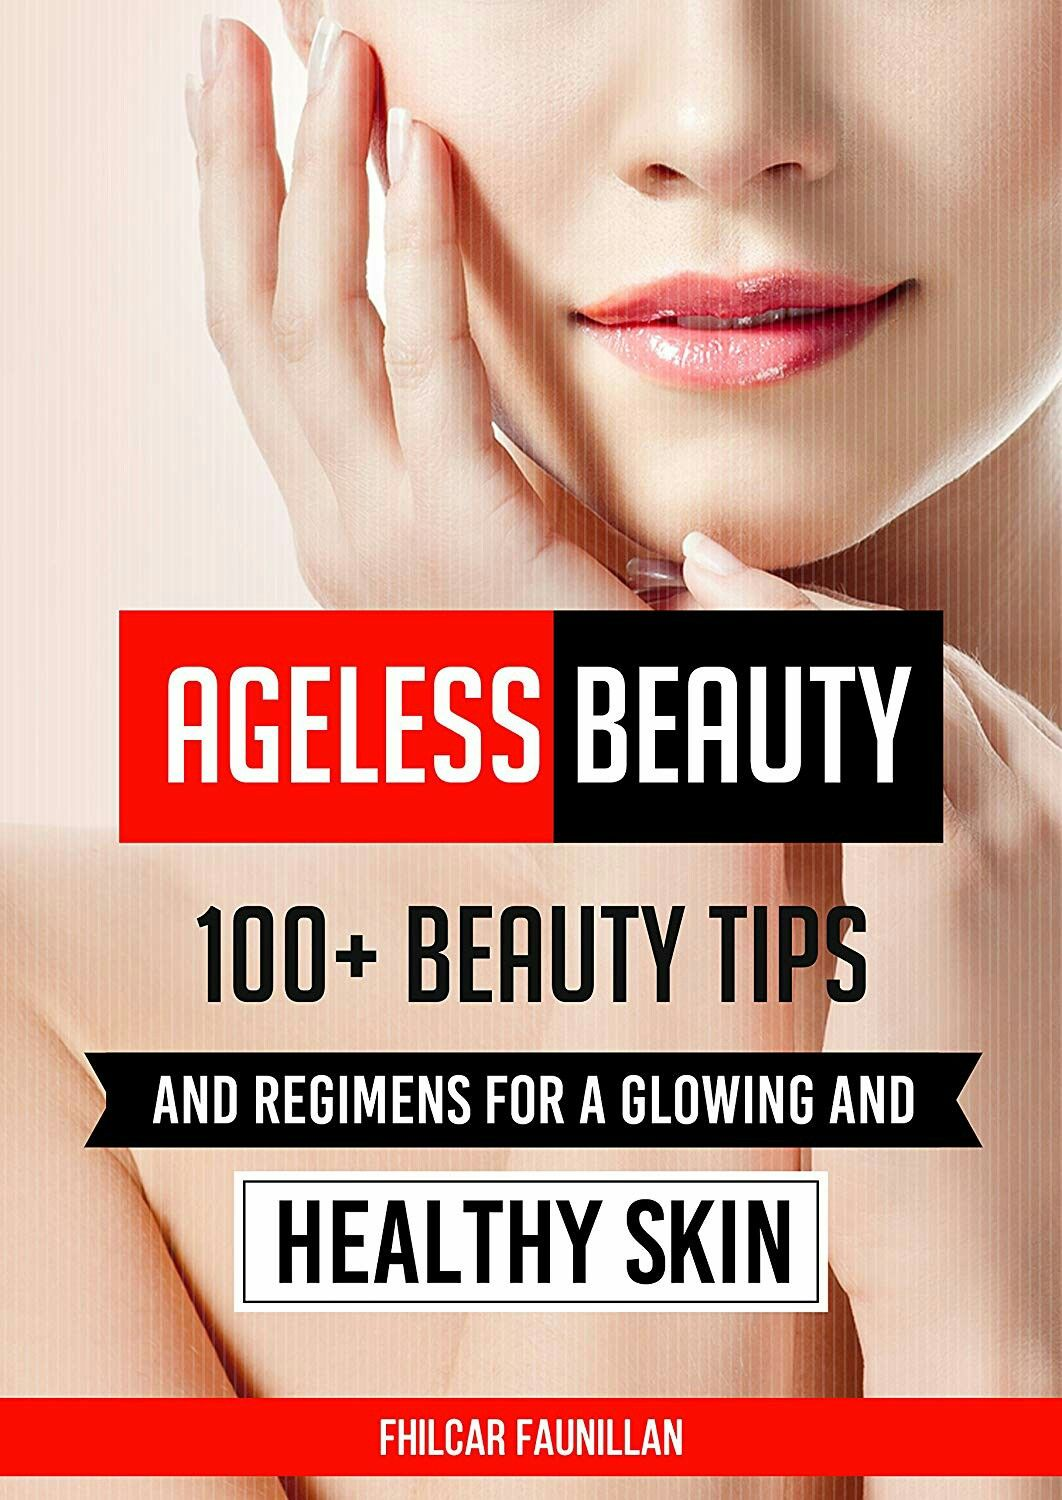 Ageless Beauty: 12+ Beauty Tips and Regimens For A Glowing And